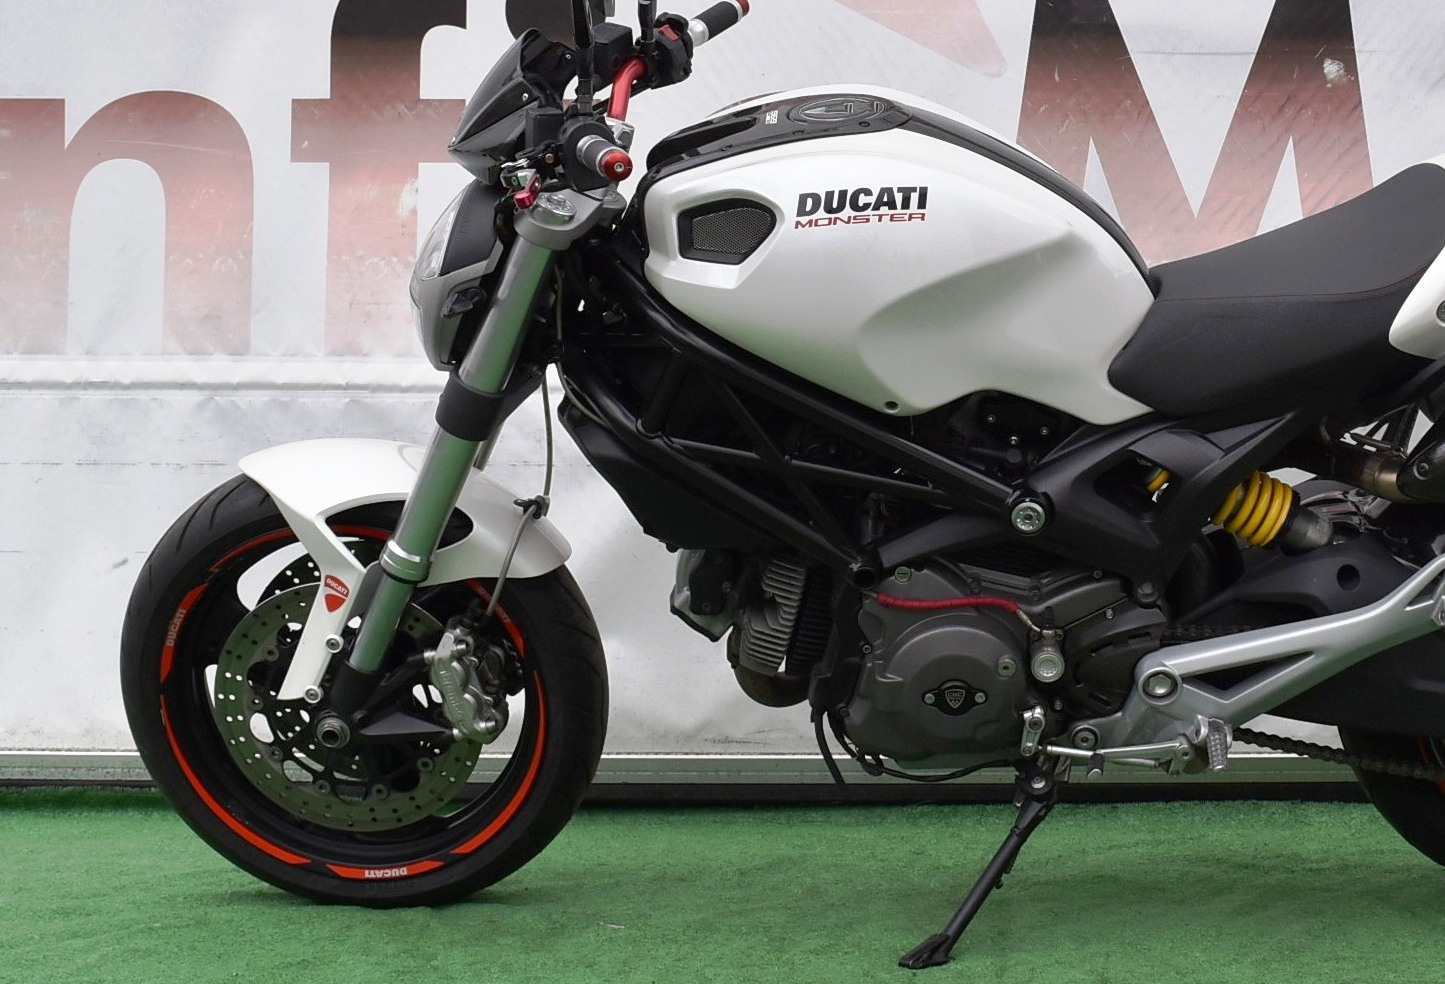 DUCATI MONSTER 696+ CARB. – 2008